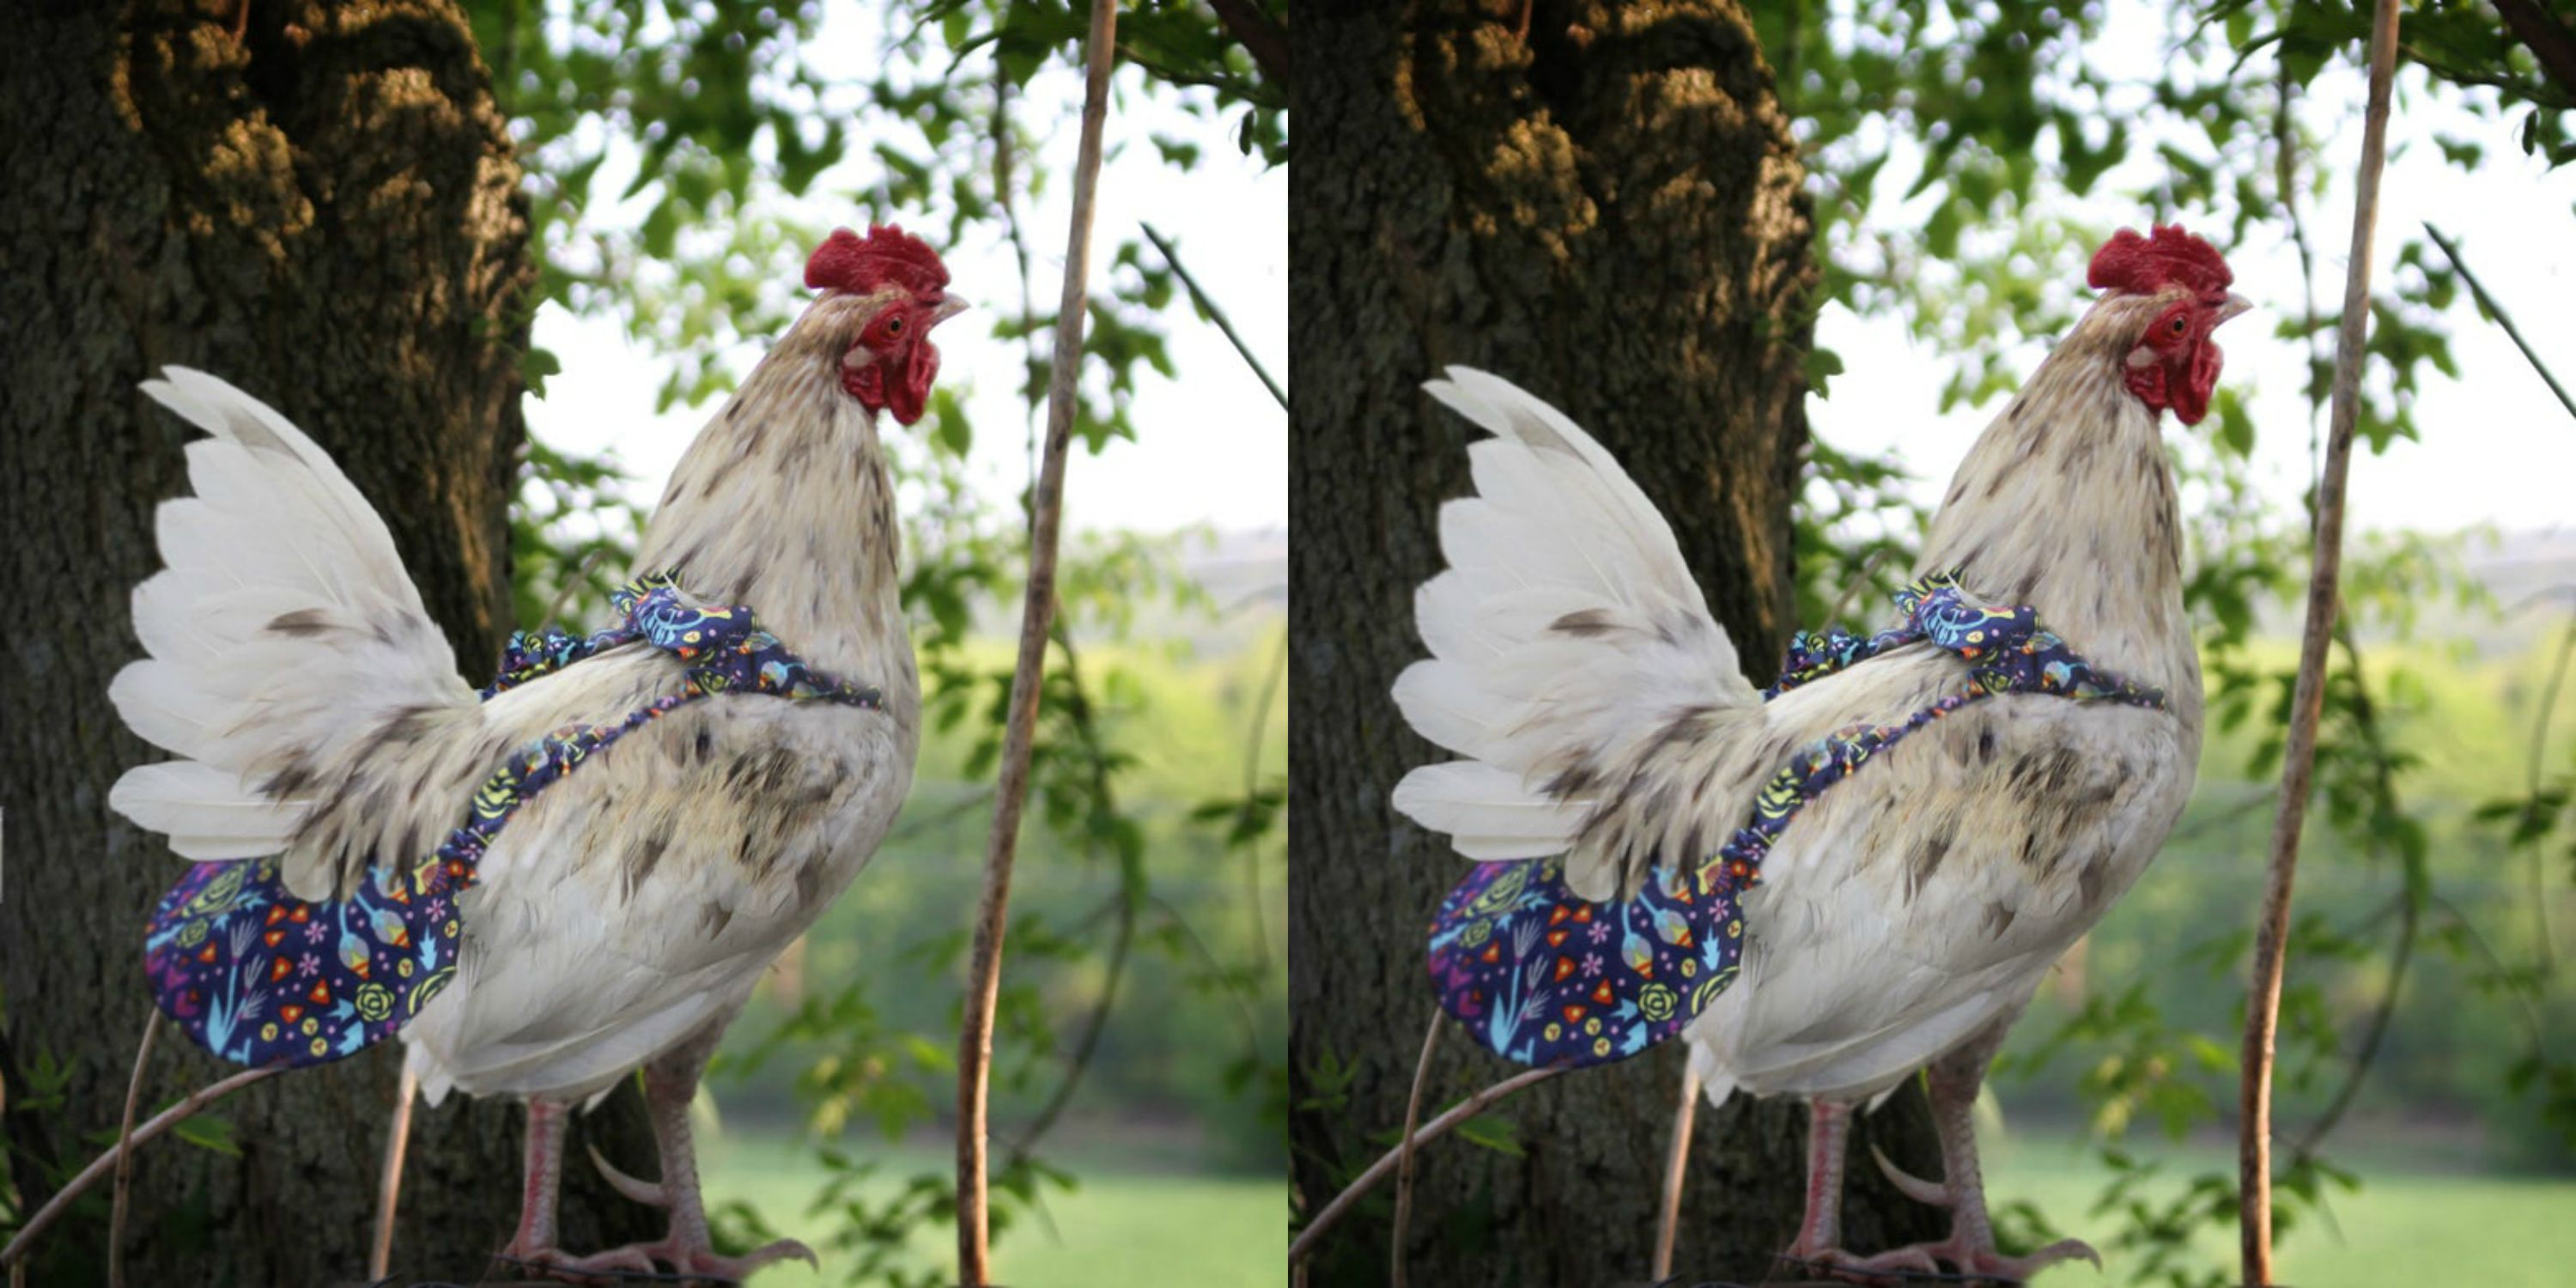 PamperYourPoultry Is Selling Chicken Diapers on Etsy, and They're Brilliant